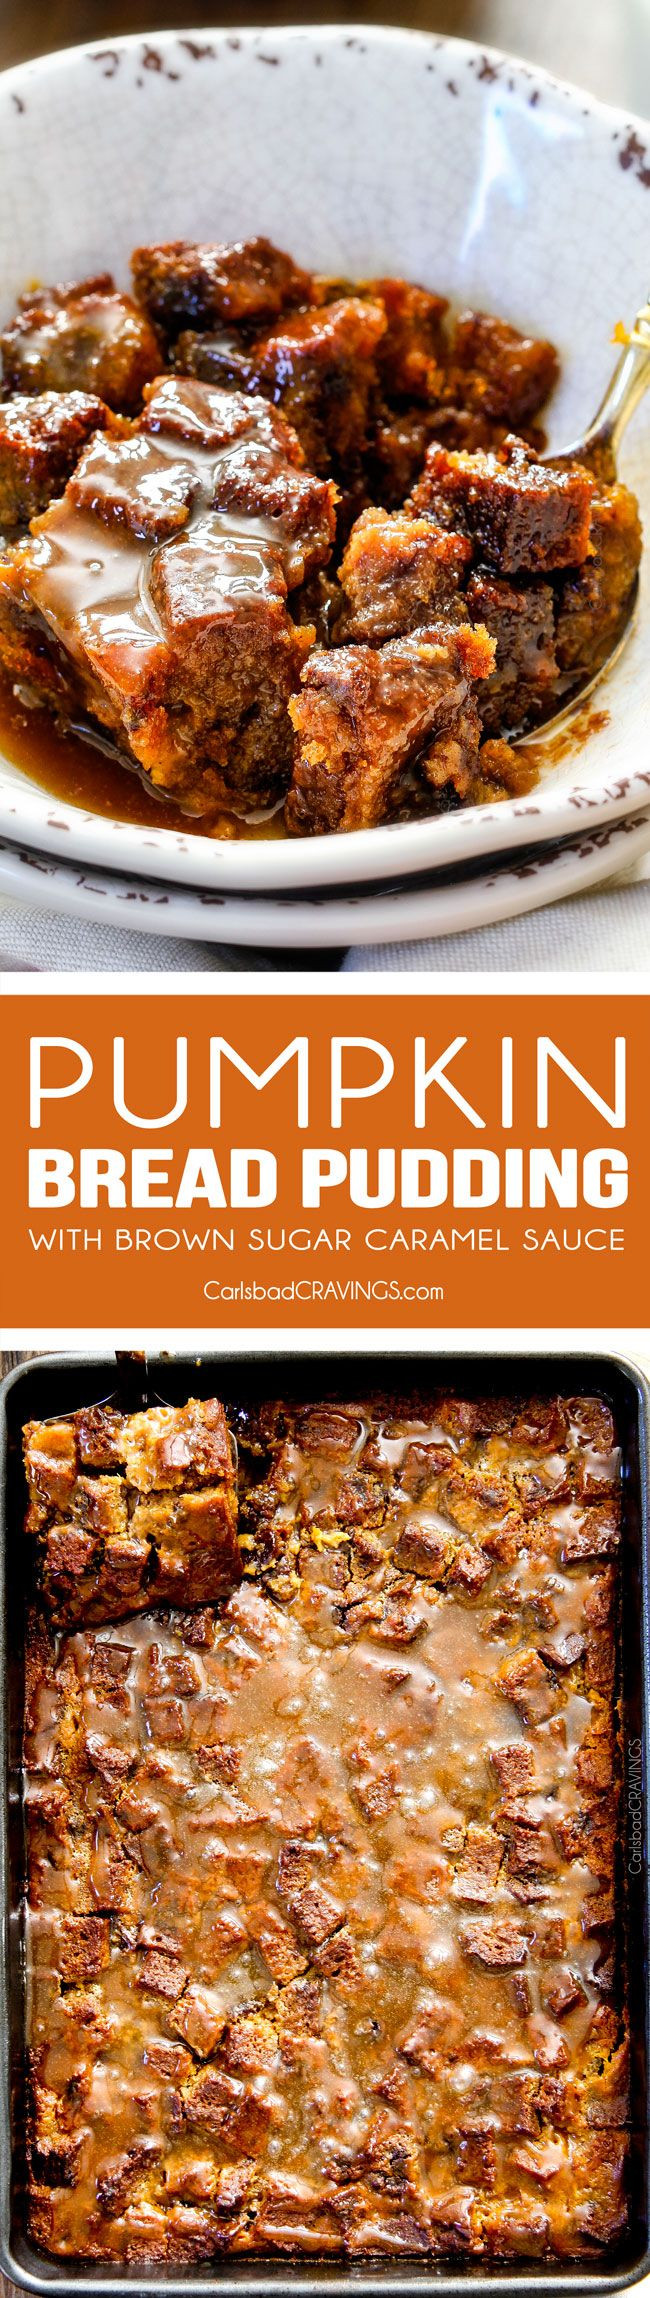 My family is obsessed with this Pumpkin Bread Pudding! Its moist, mega flavorful and the Brown Sugar Caramel Sauce is out of this world! #thanksgiving #dessert #fall via @Carlsbad Cravings